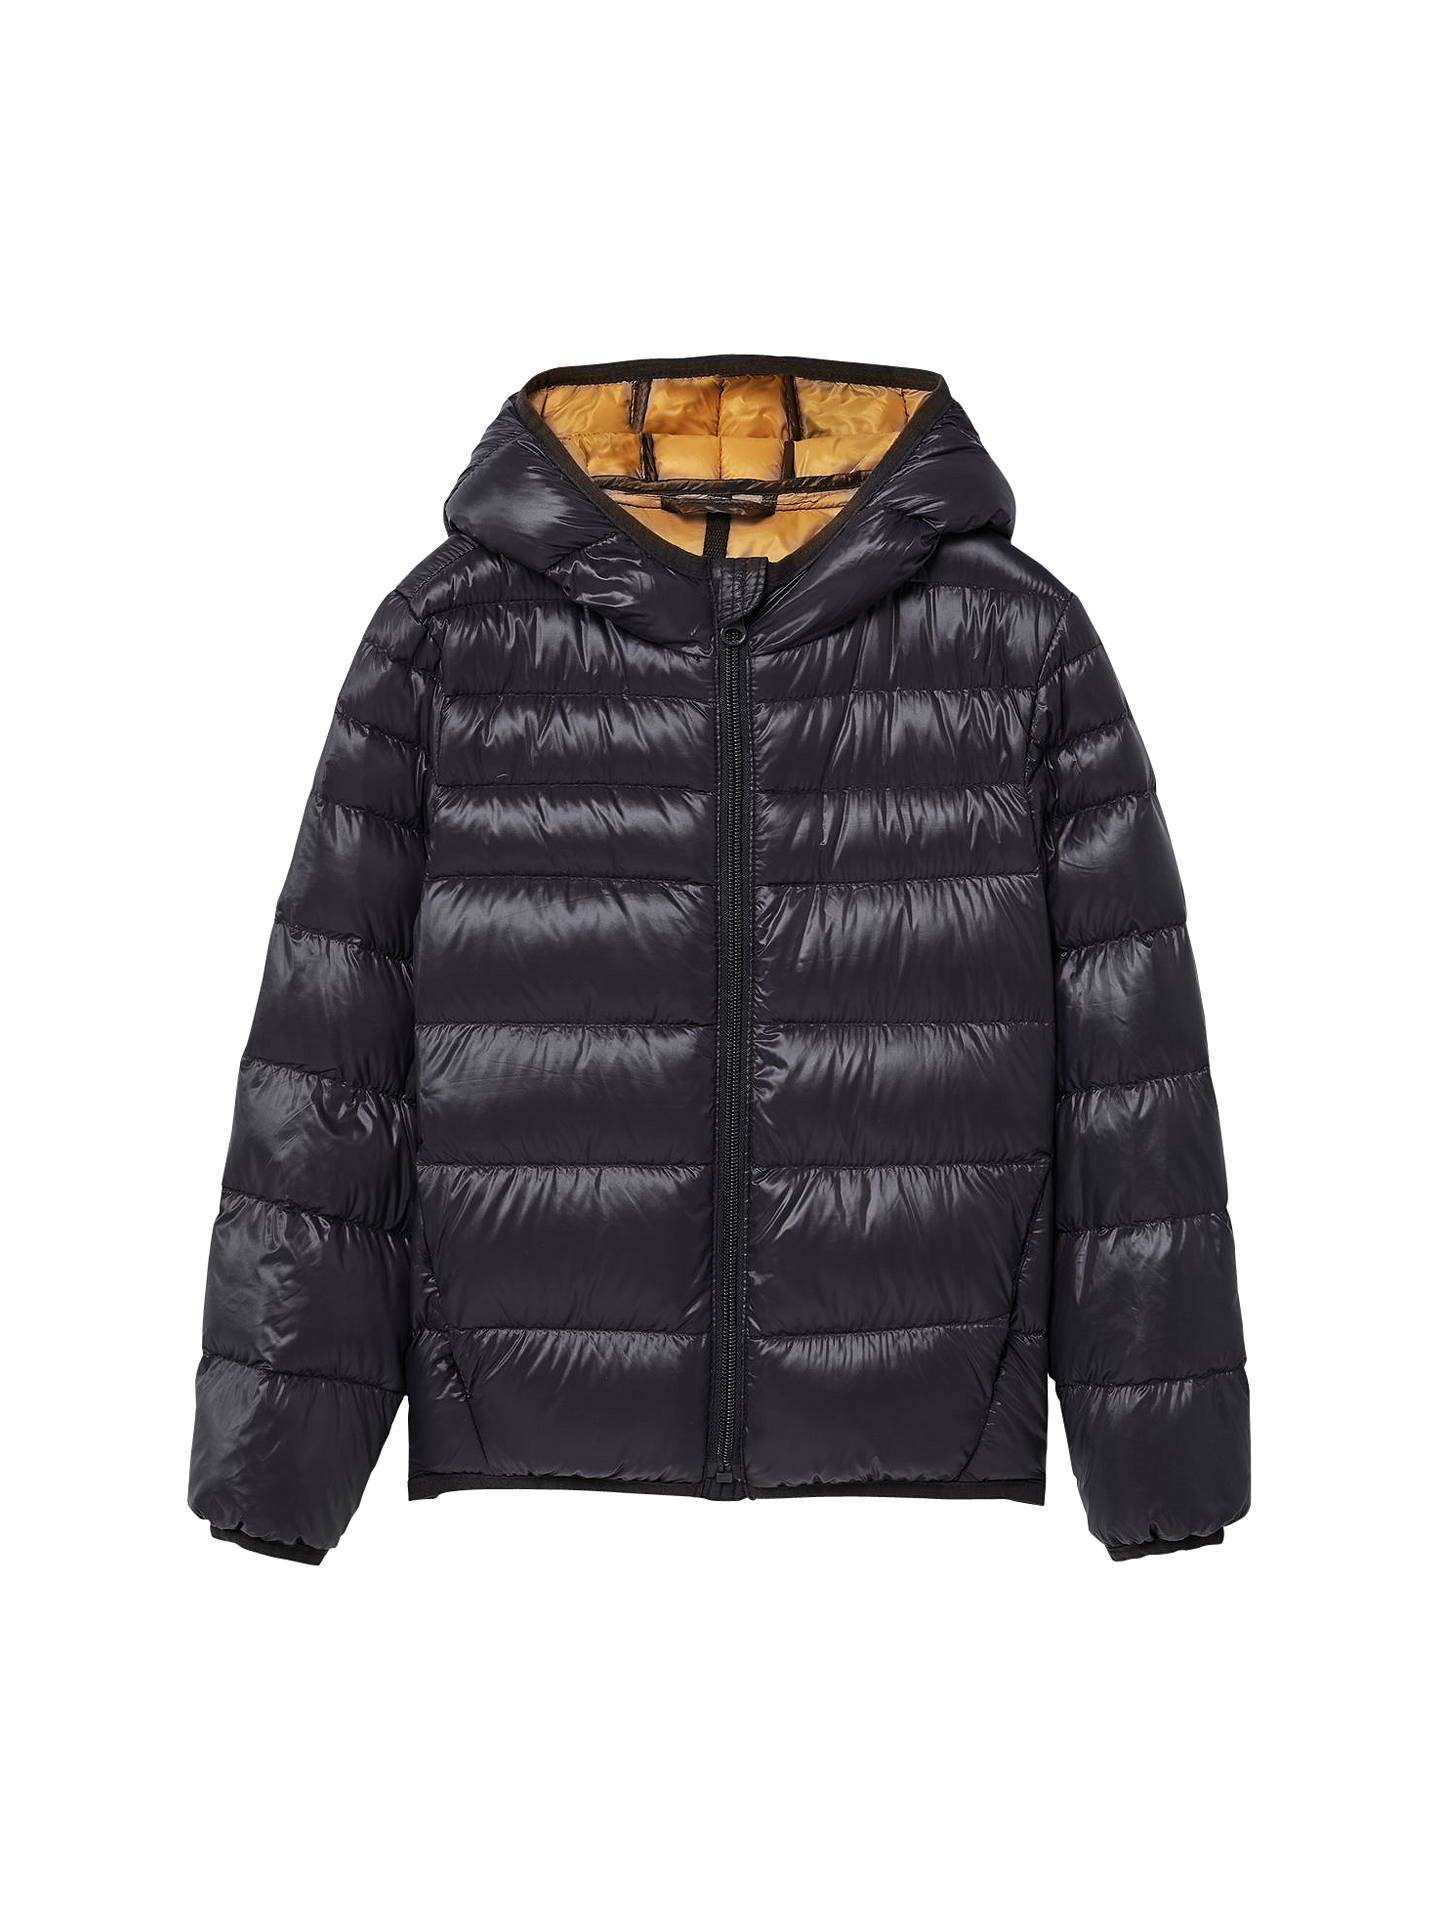 644e33e2bf7 Mango Kids Boys' Feather and Down Quilted Coat at John Lewis & Partners